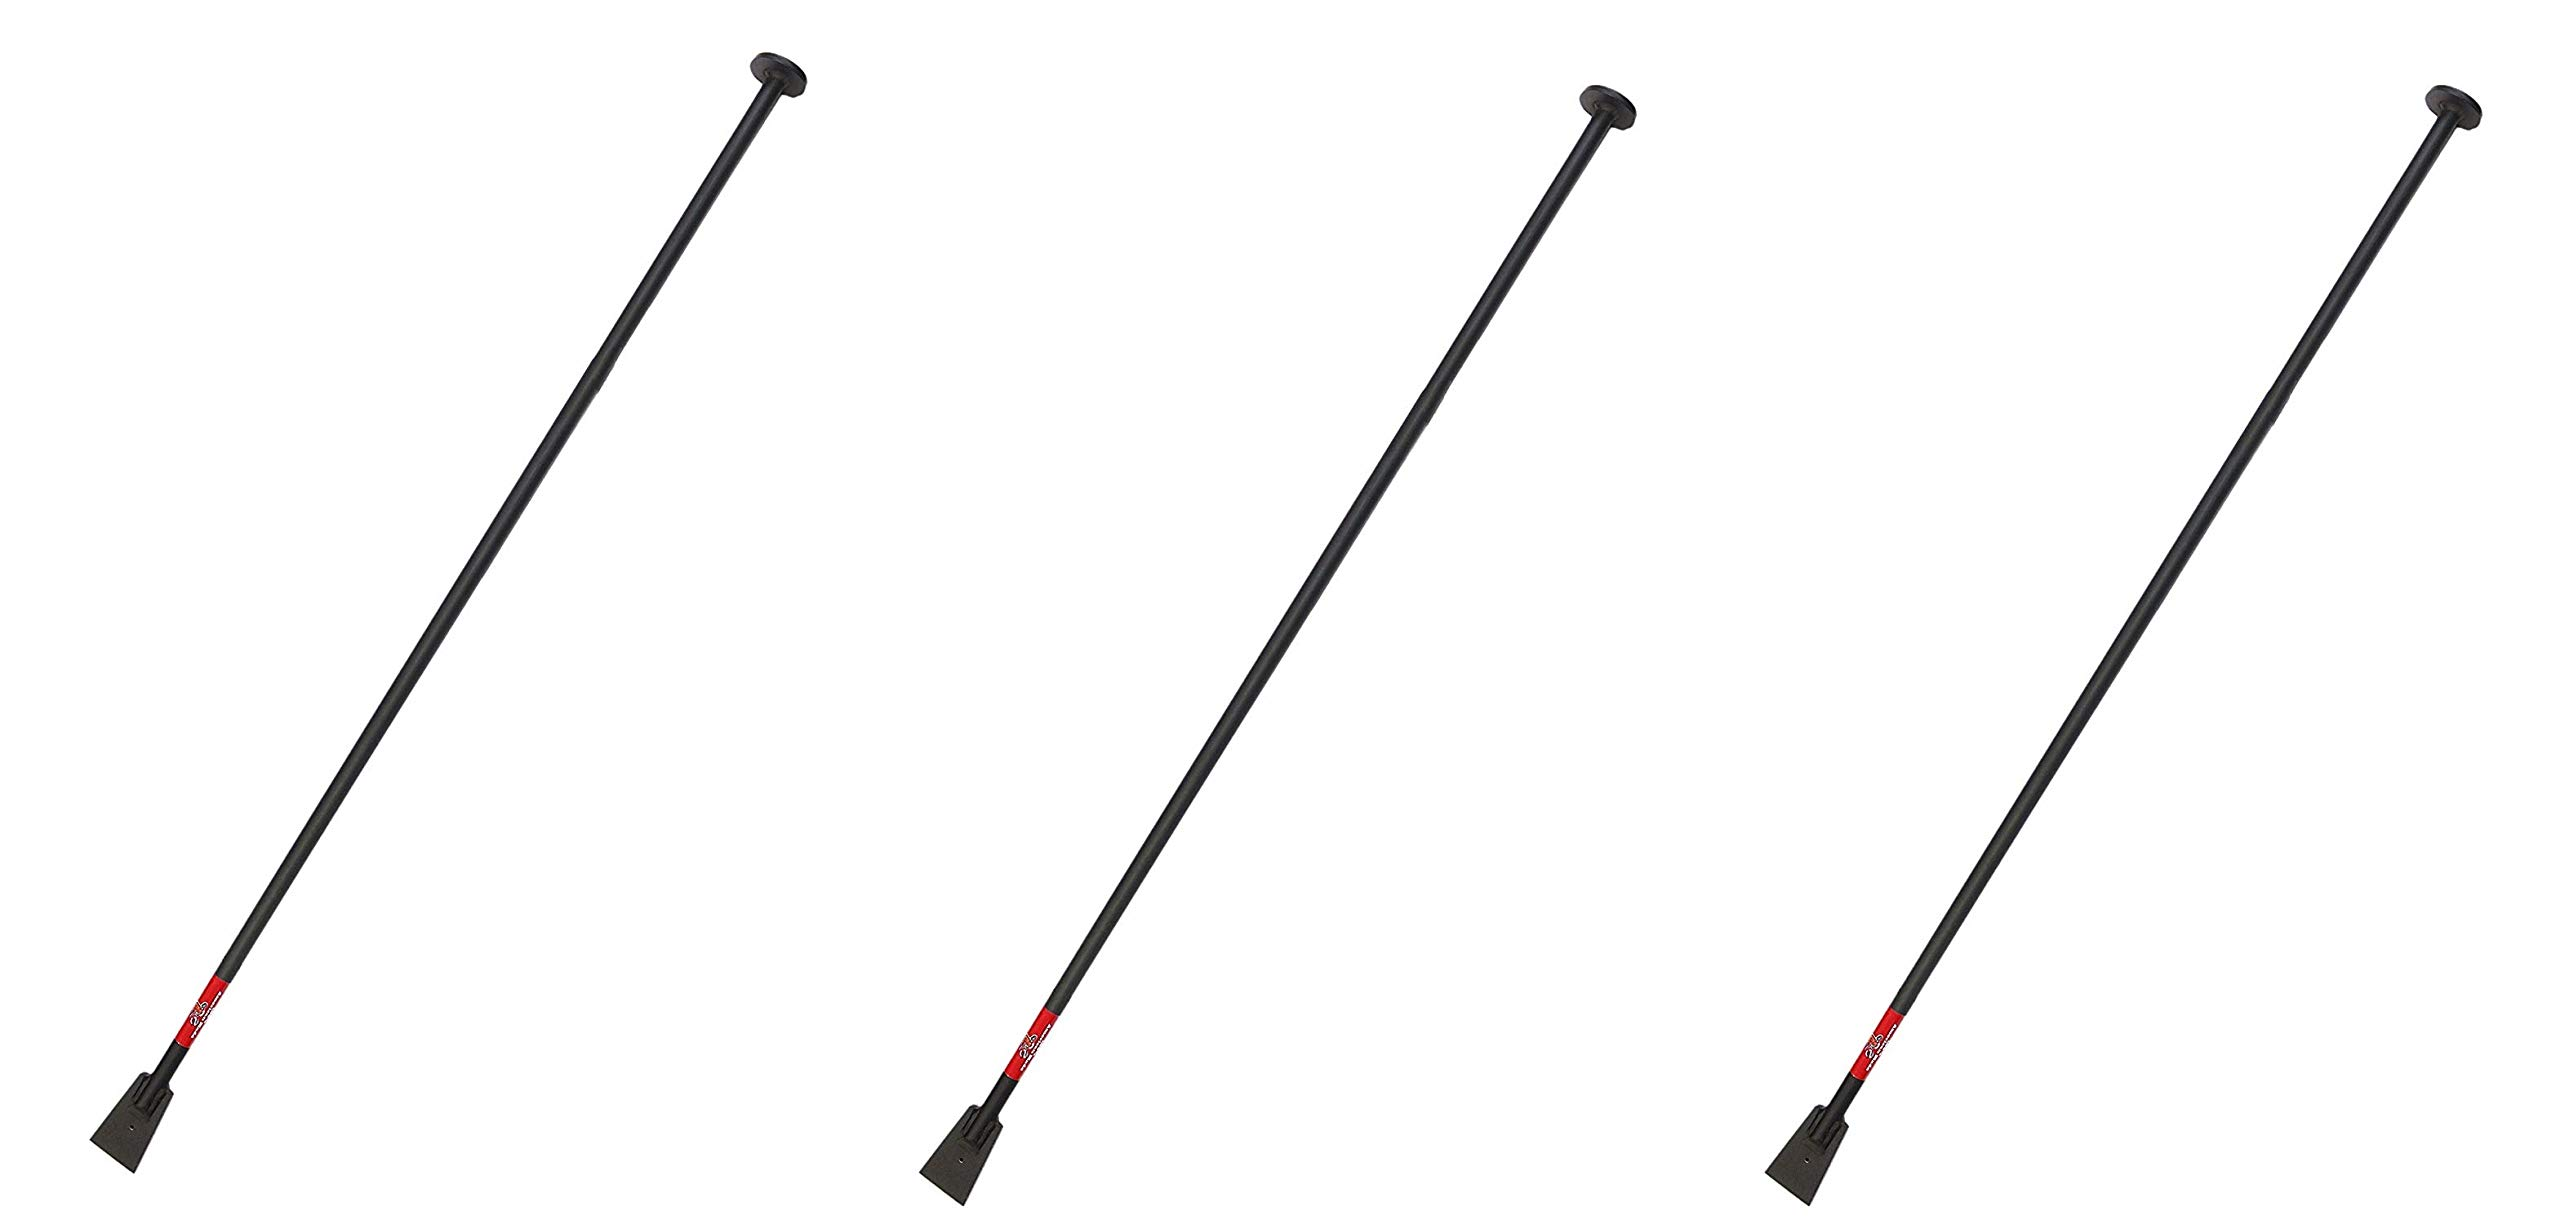 Bully Tools 92539 Steel Tamping and Digging Bar, 68-Inch (Pack of 3)